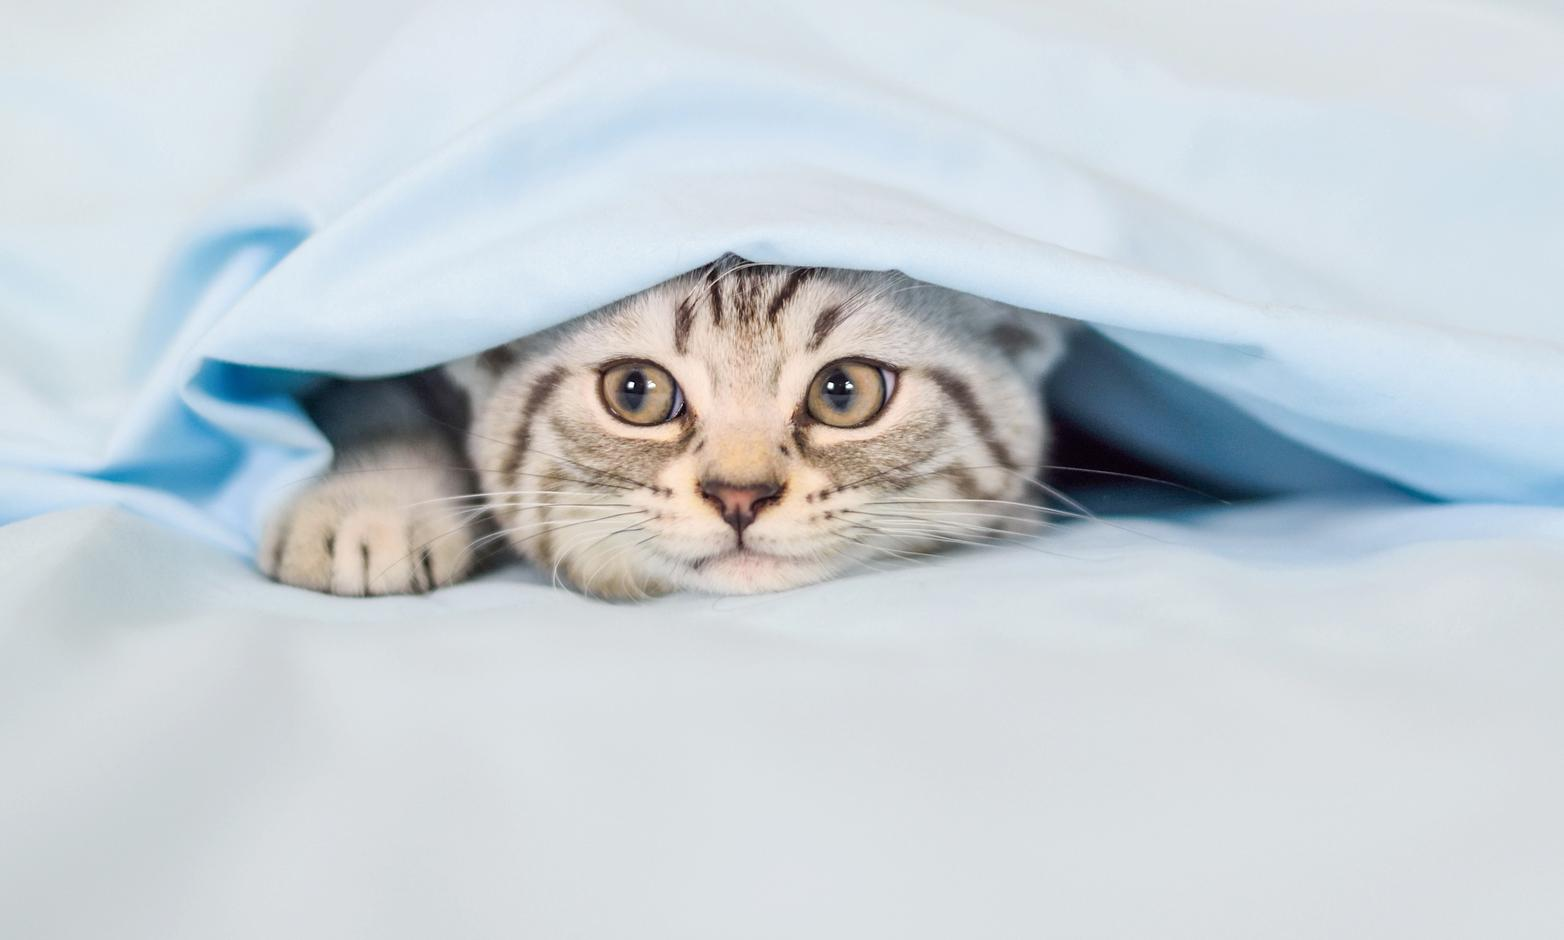 Kitten hiding under quilt cover